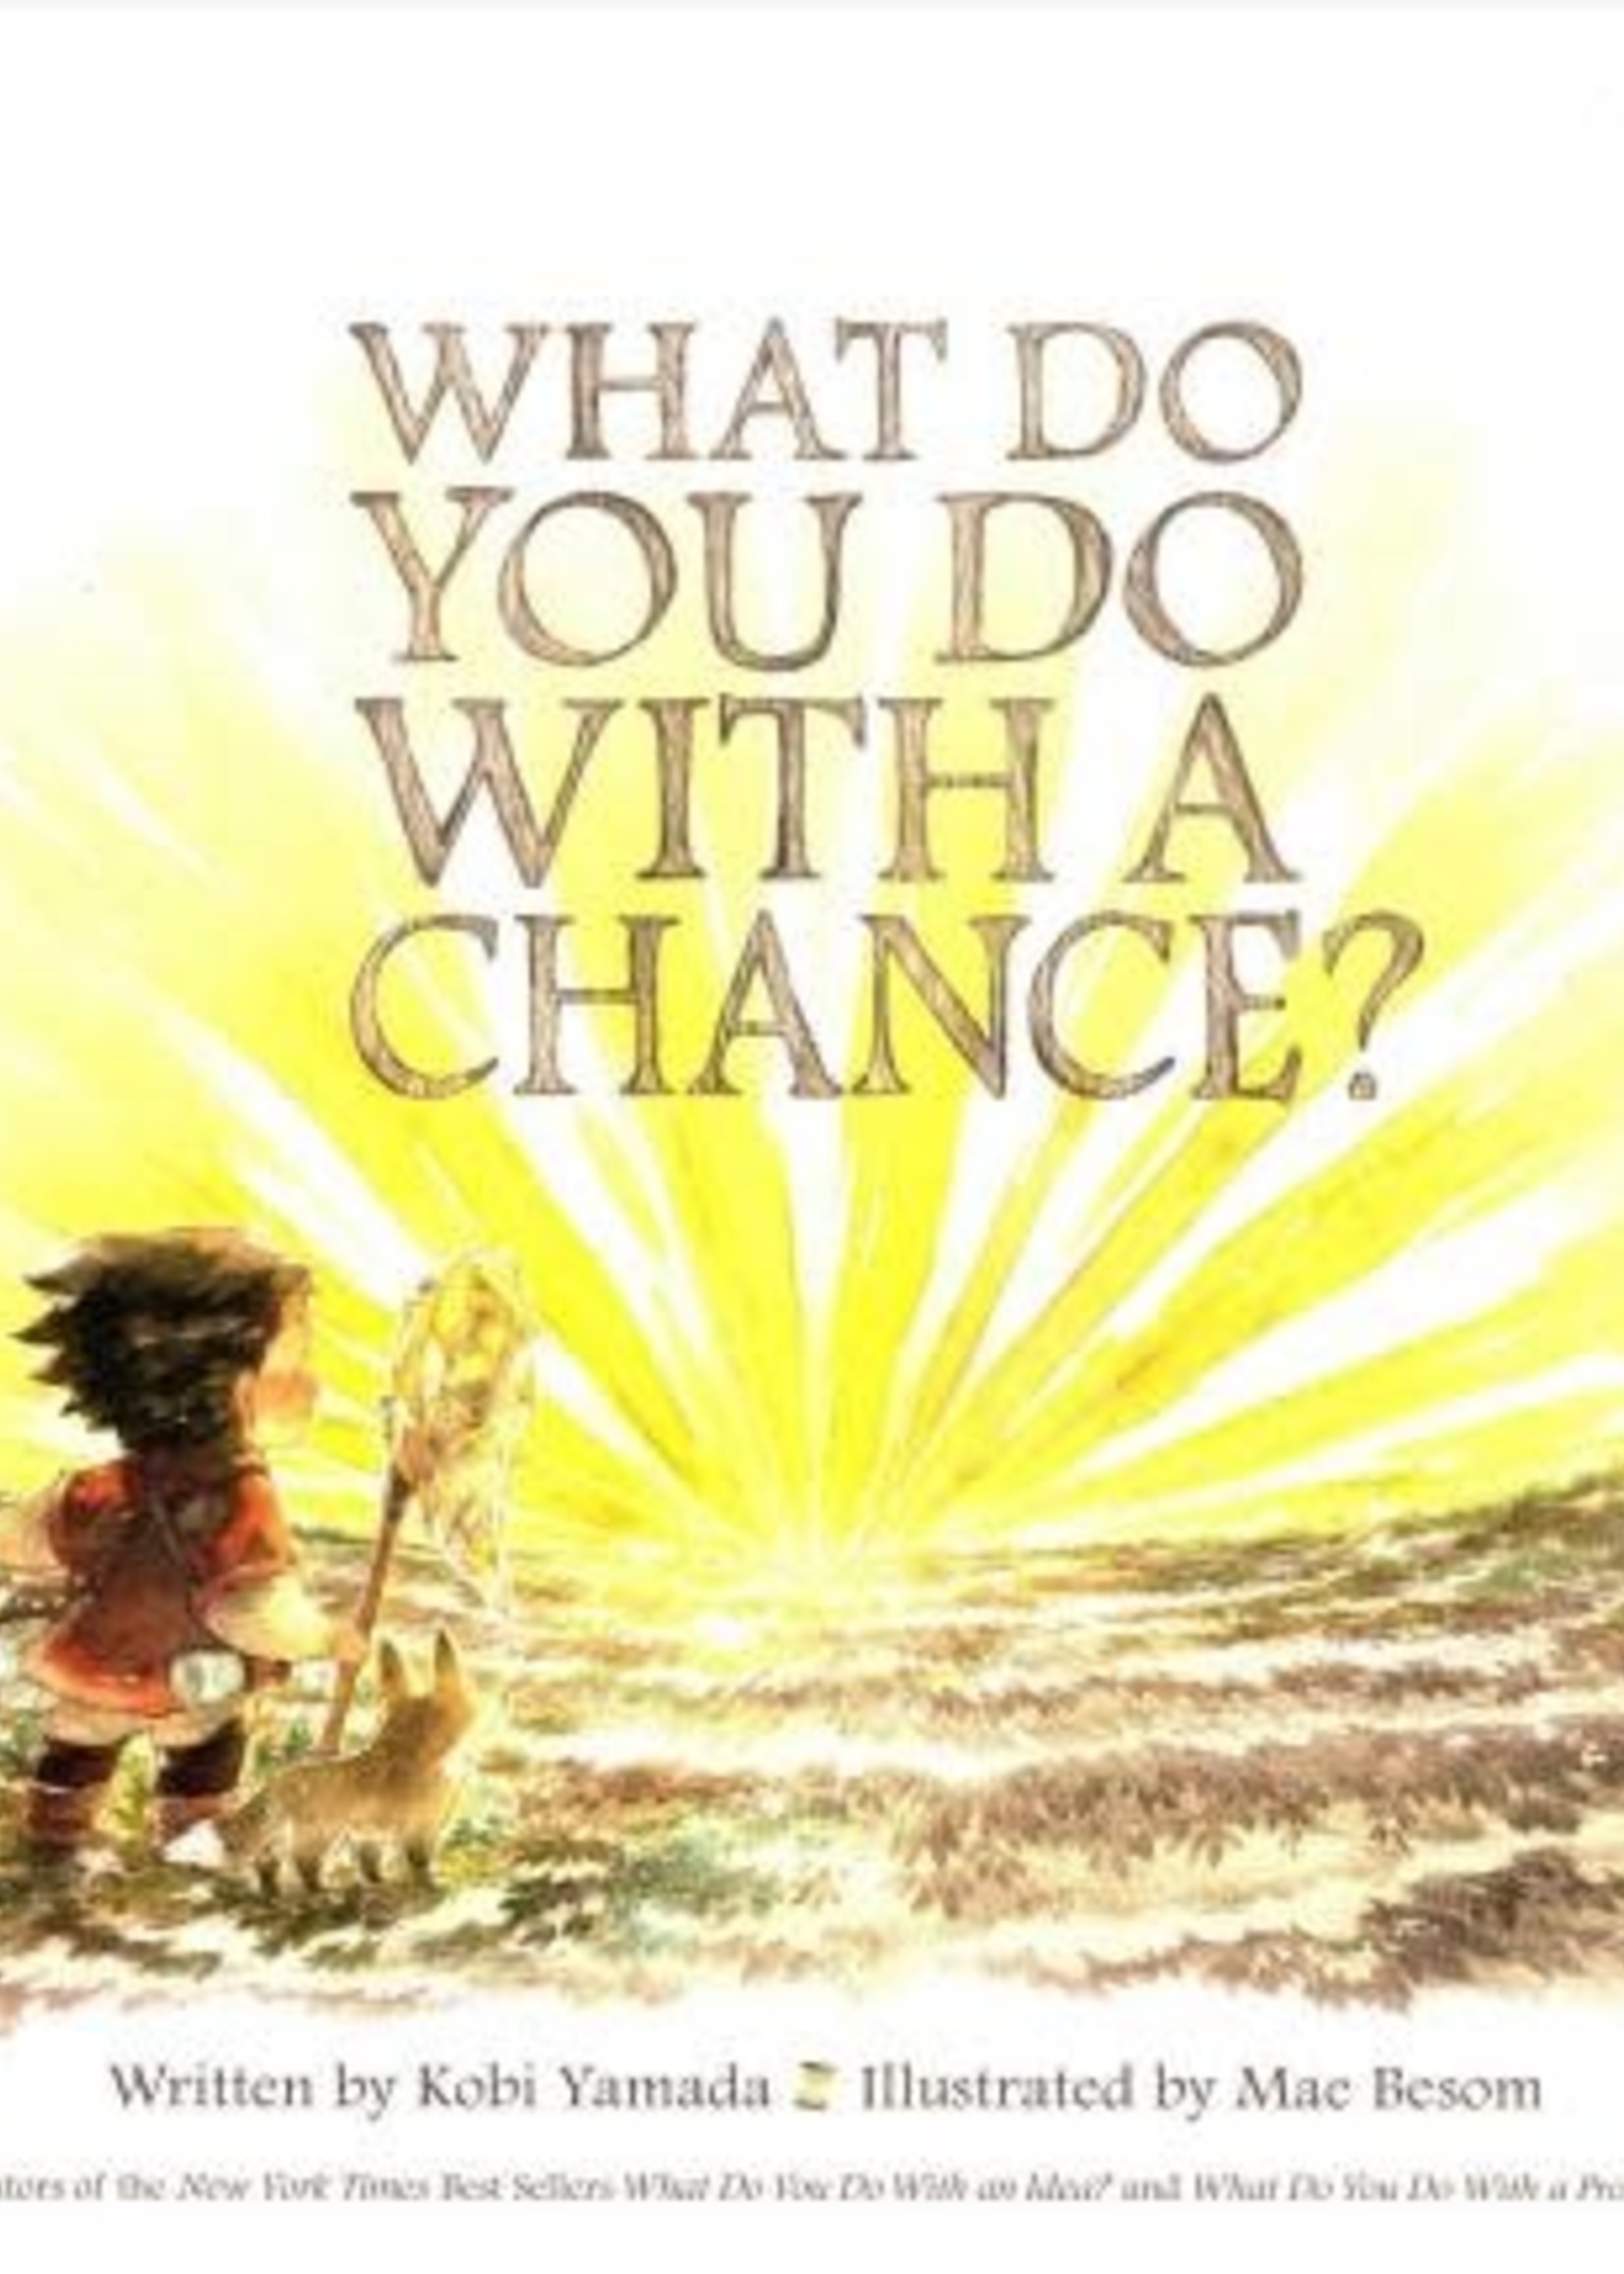 What Do You Do With a Chance? - Hardcover